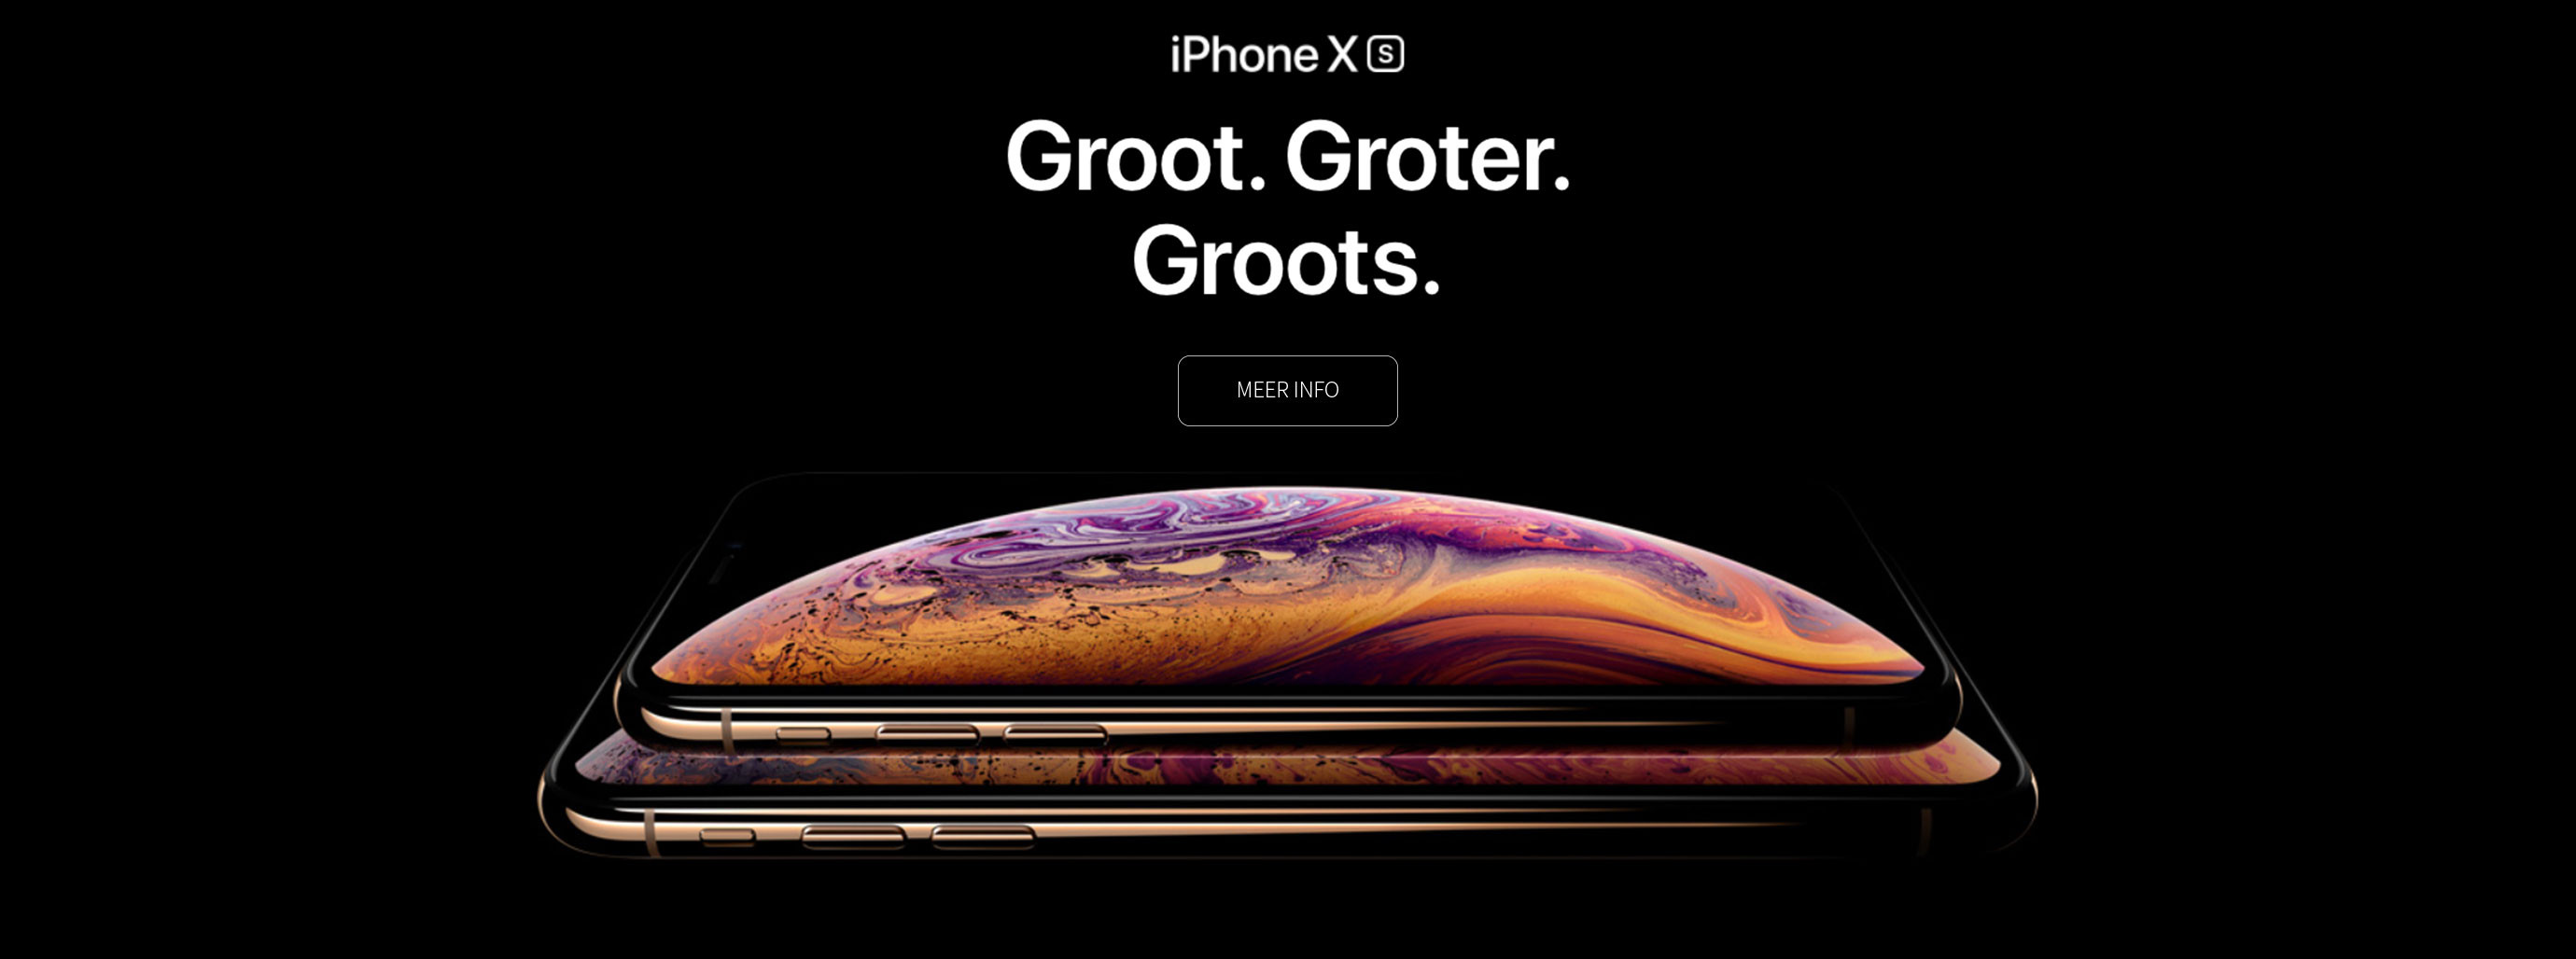 iPhoneXs_overview.jpg